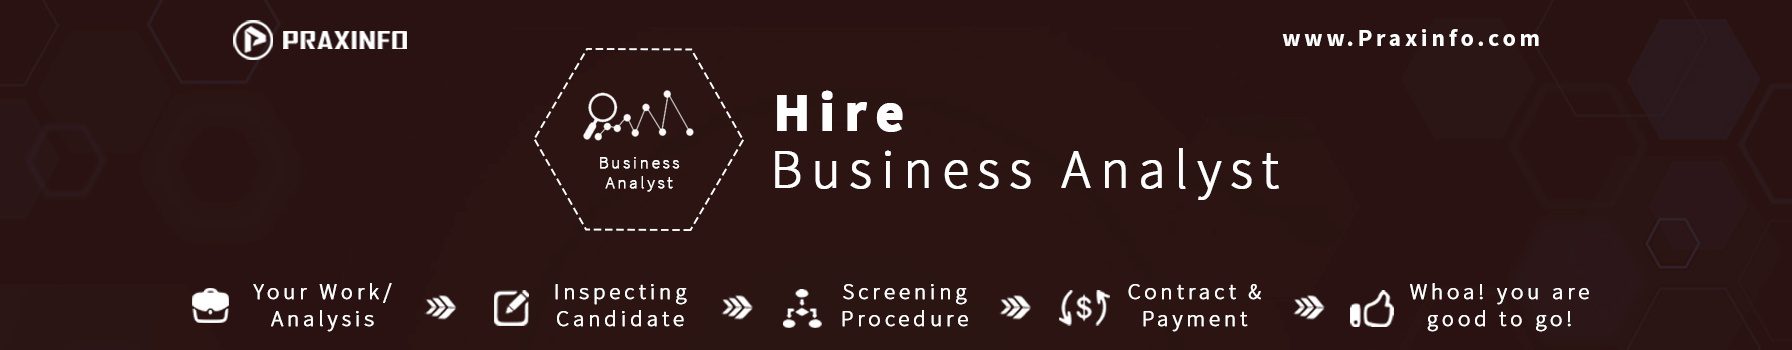 hire-business-analyst.png